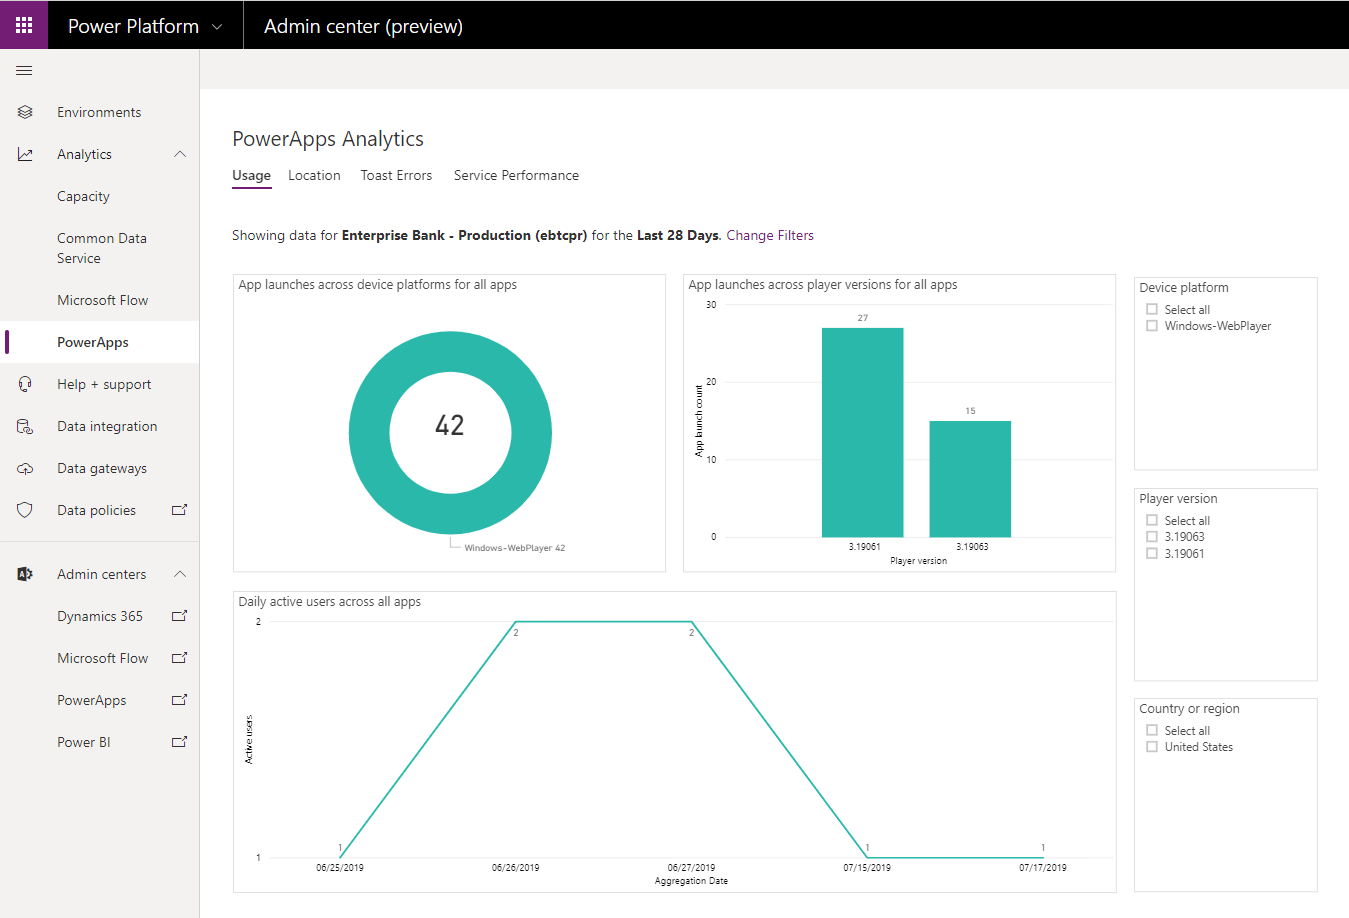 solution architect notables powerapps analytics